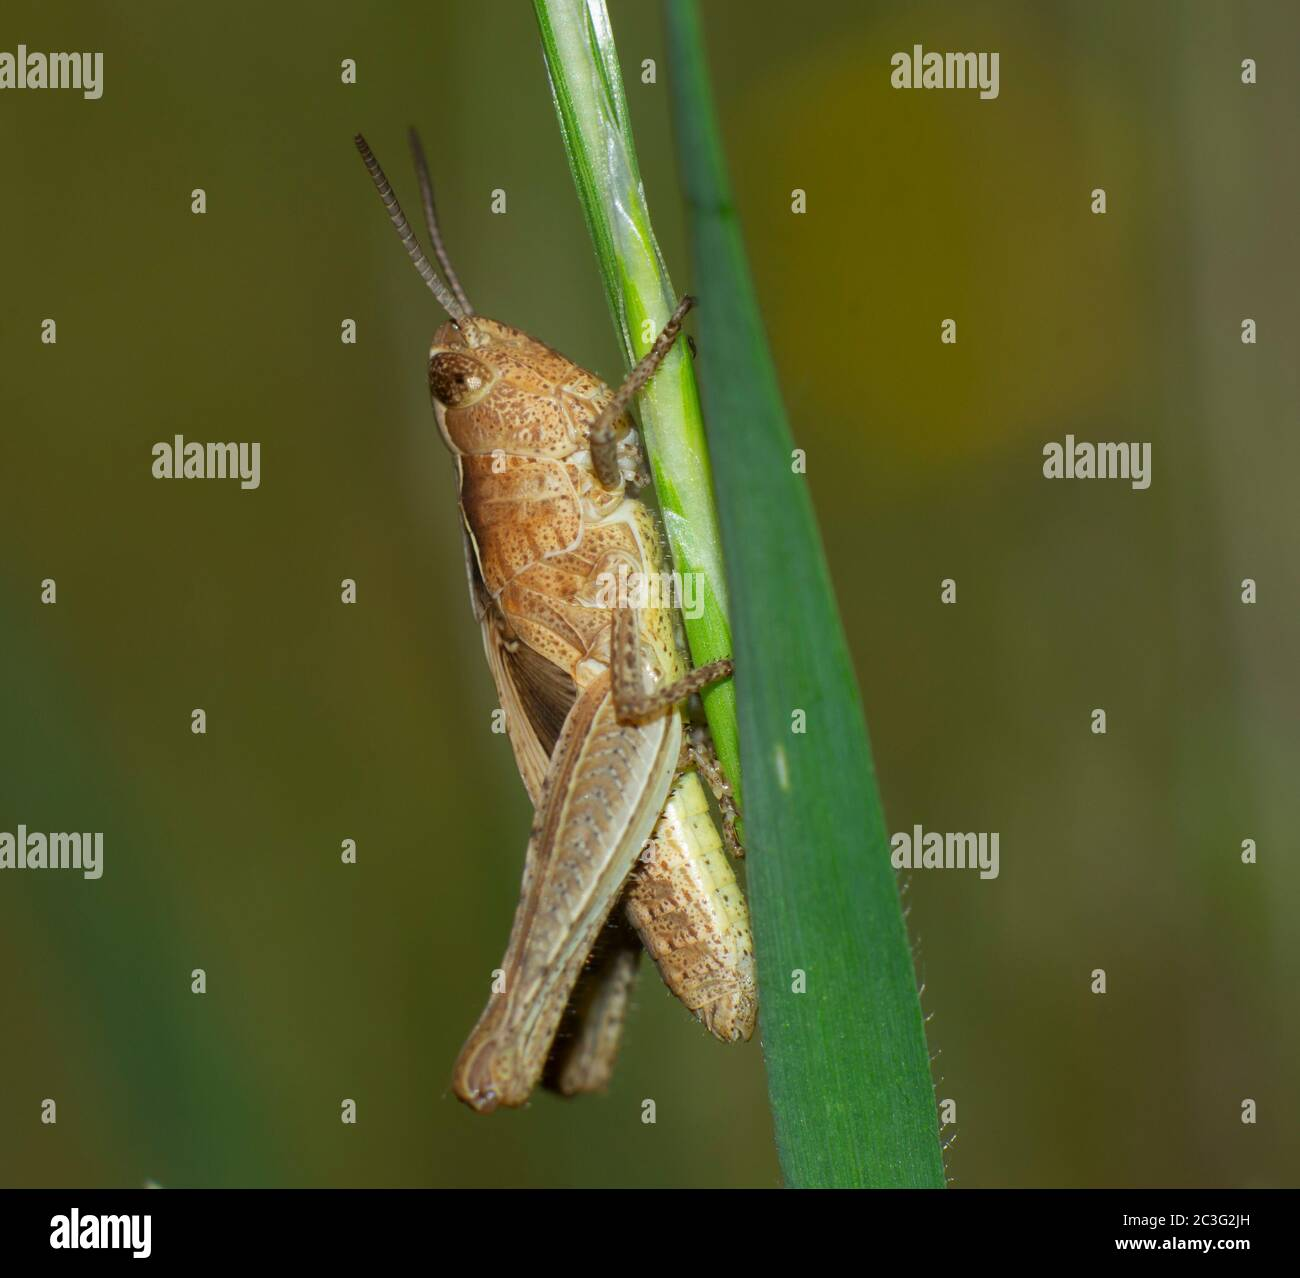 closeup of brown cricket insect climbing a blade of grass Stock Photo